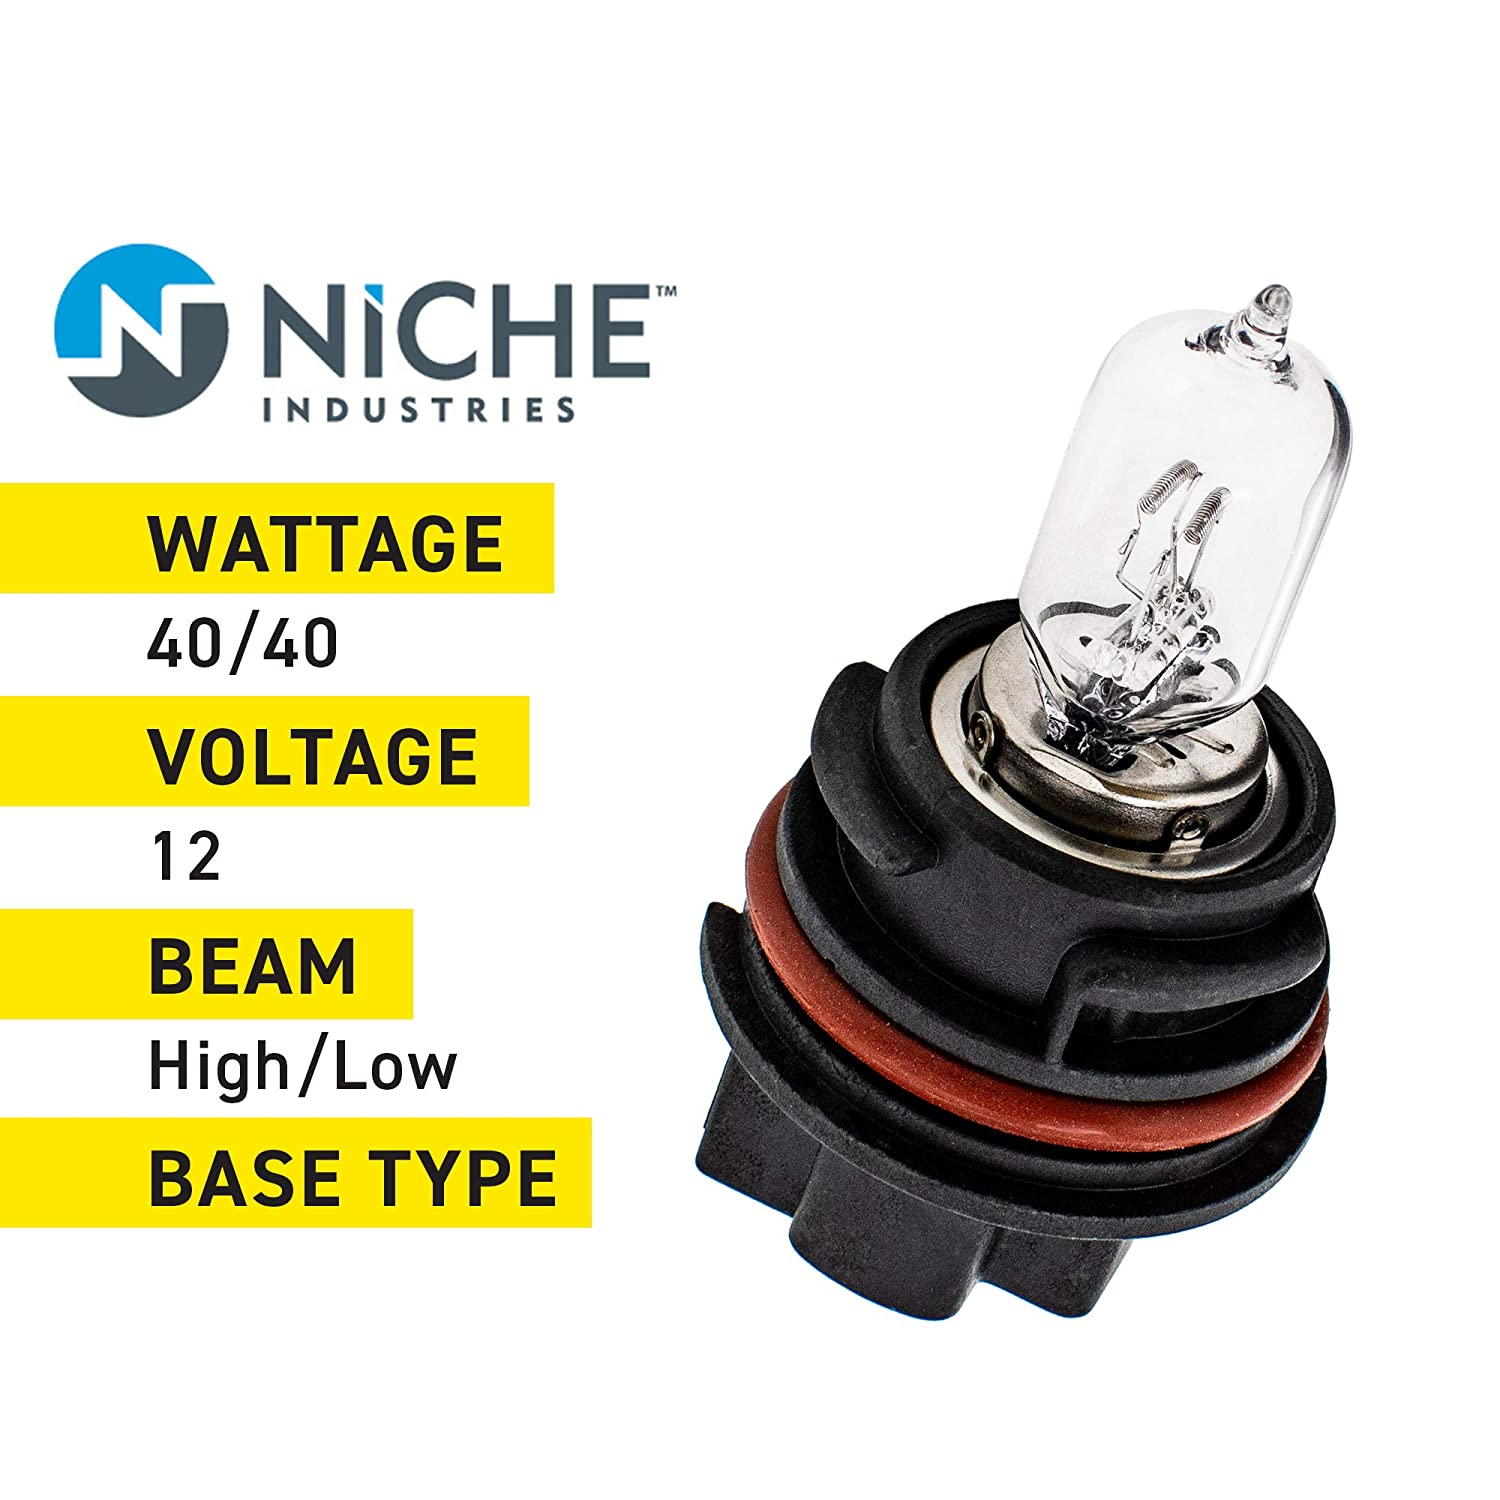 NICHE Headlight Bulb For 2006-14 Kawasaki Brute Force 750 650 Suzuki Vinson 500 Quadsport Z400 Z250 Can-Am DS250 2 Pack